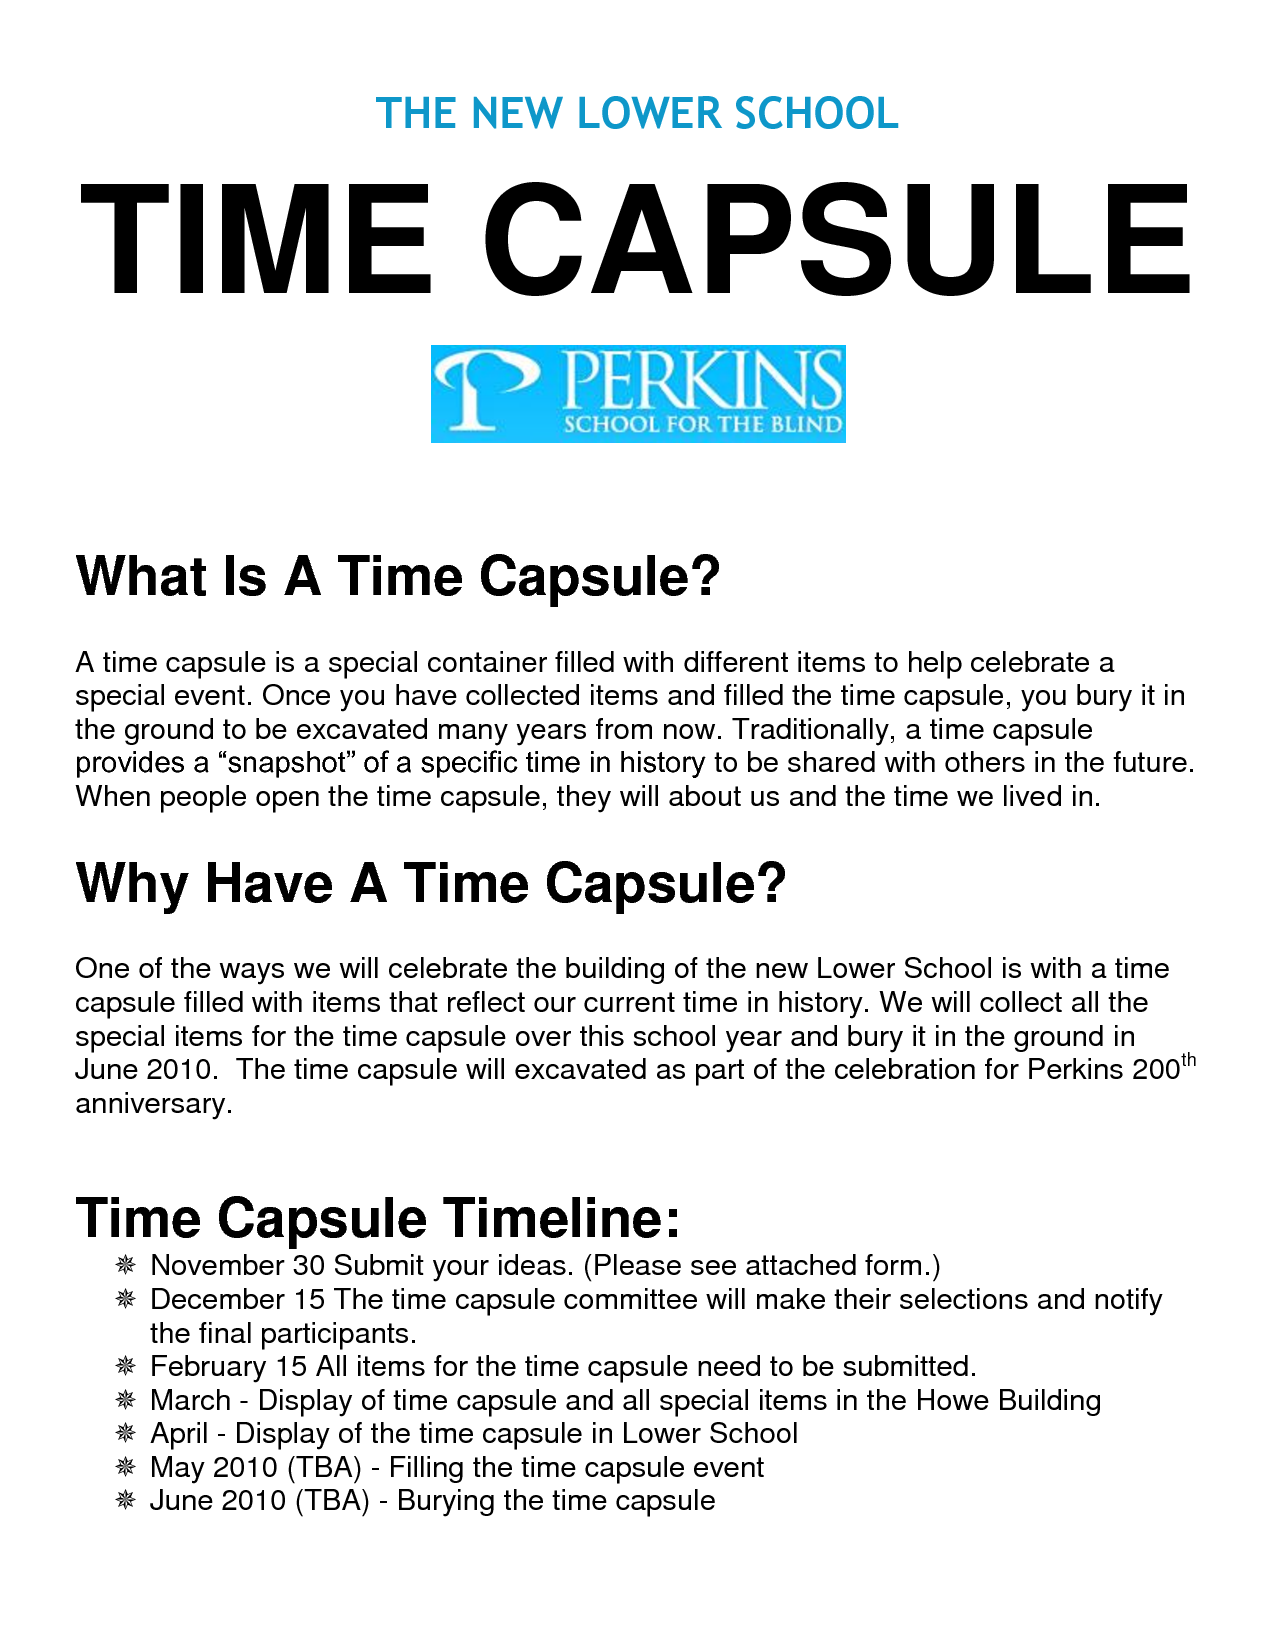 Time capsule ideas | PTA | Pinterest | Ideas, Time capsule and Search